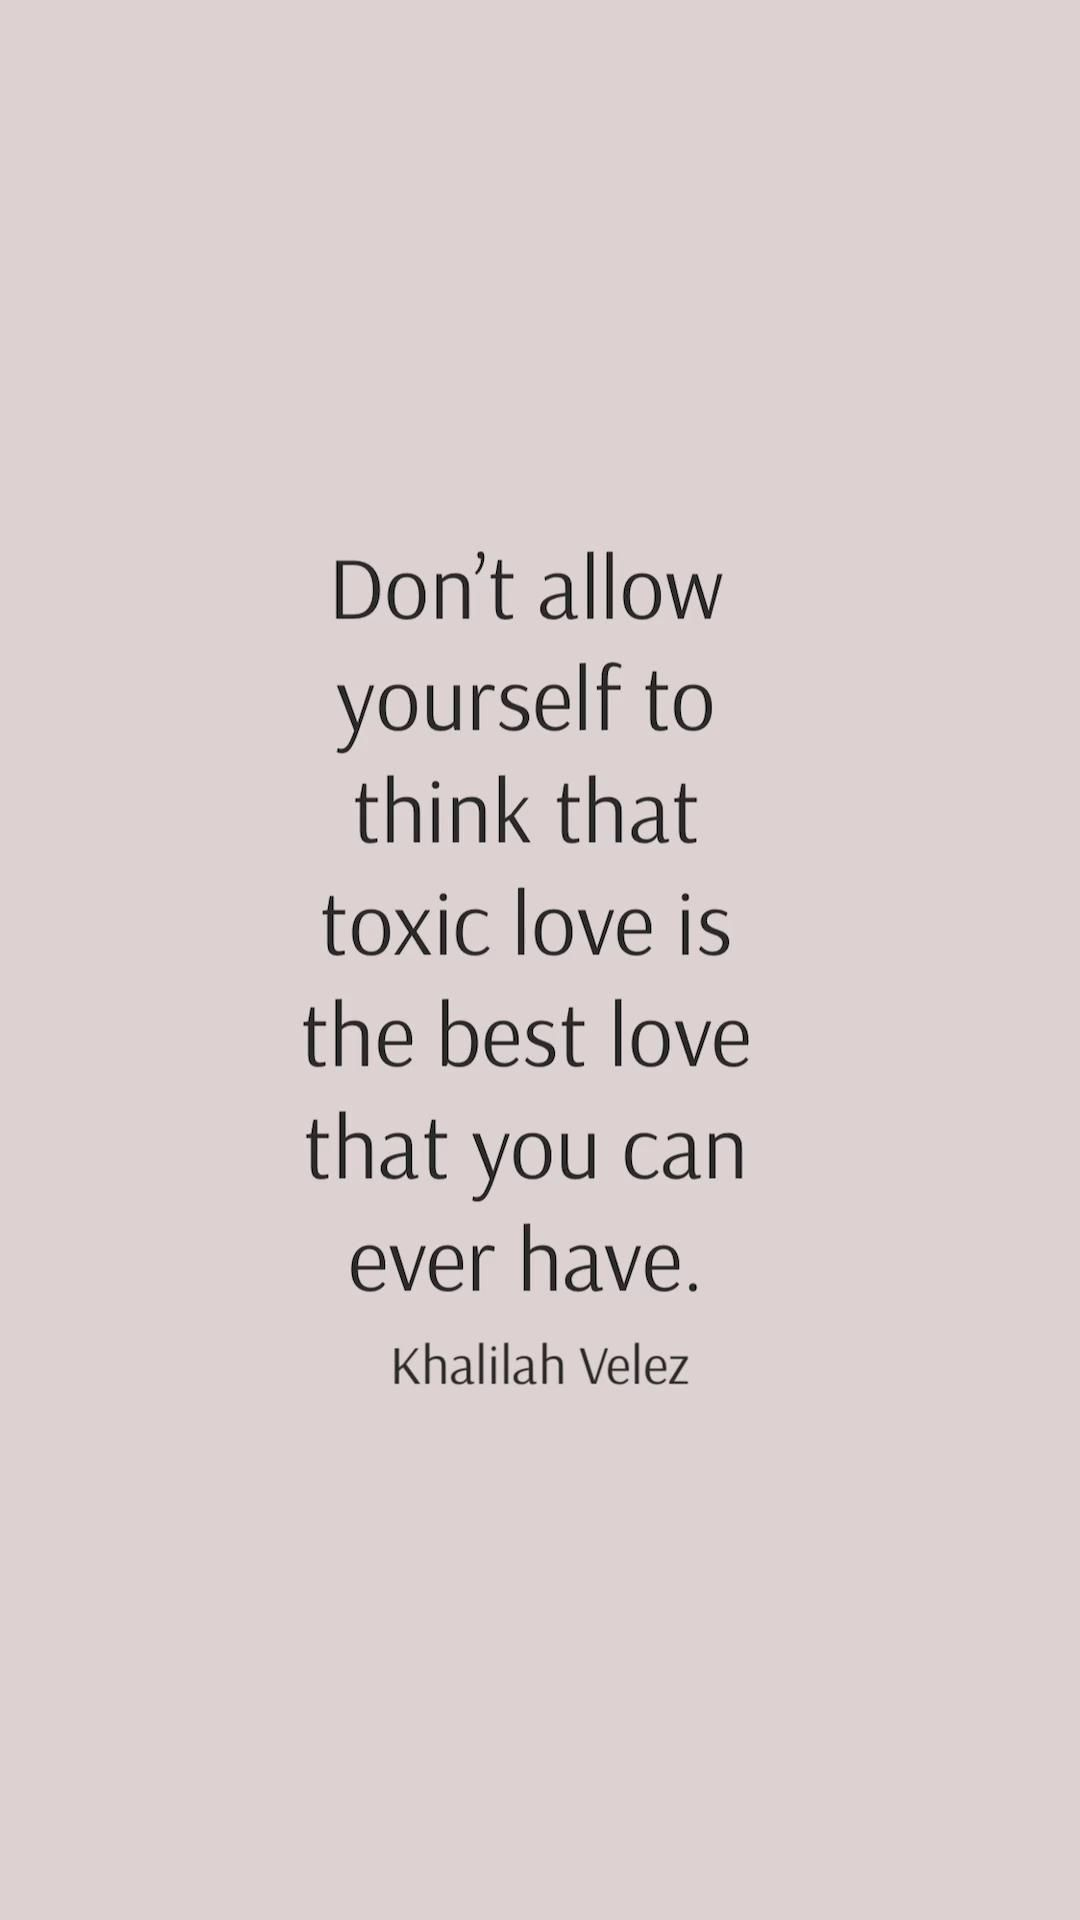 Toxic love is never the best love.